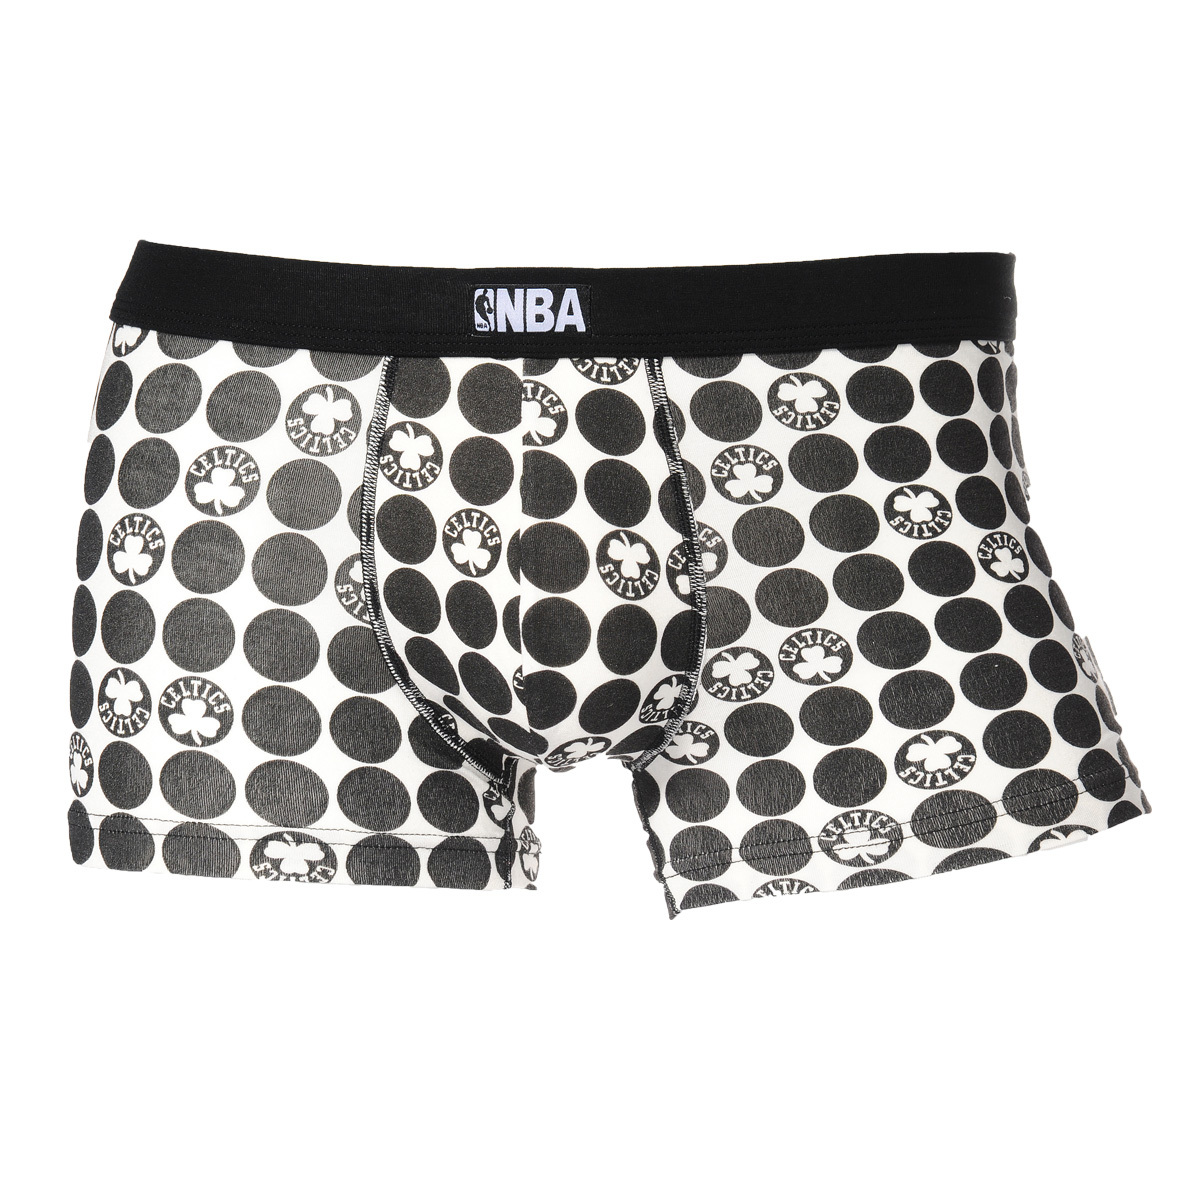 Buy mens underwear - NBA Boston Celtics Men\'s Underwear Boxer Sizes: L / XL / XXL Color: Black - Black - XL